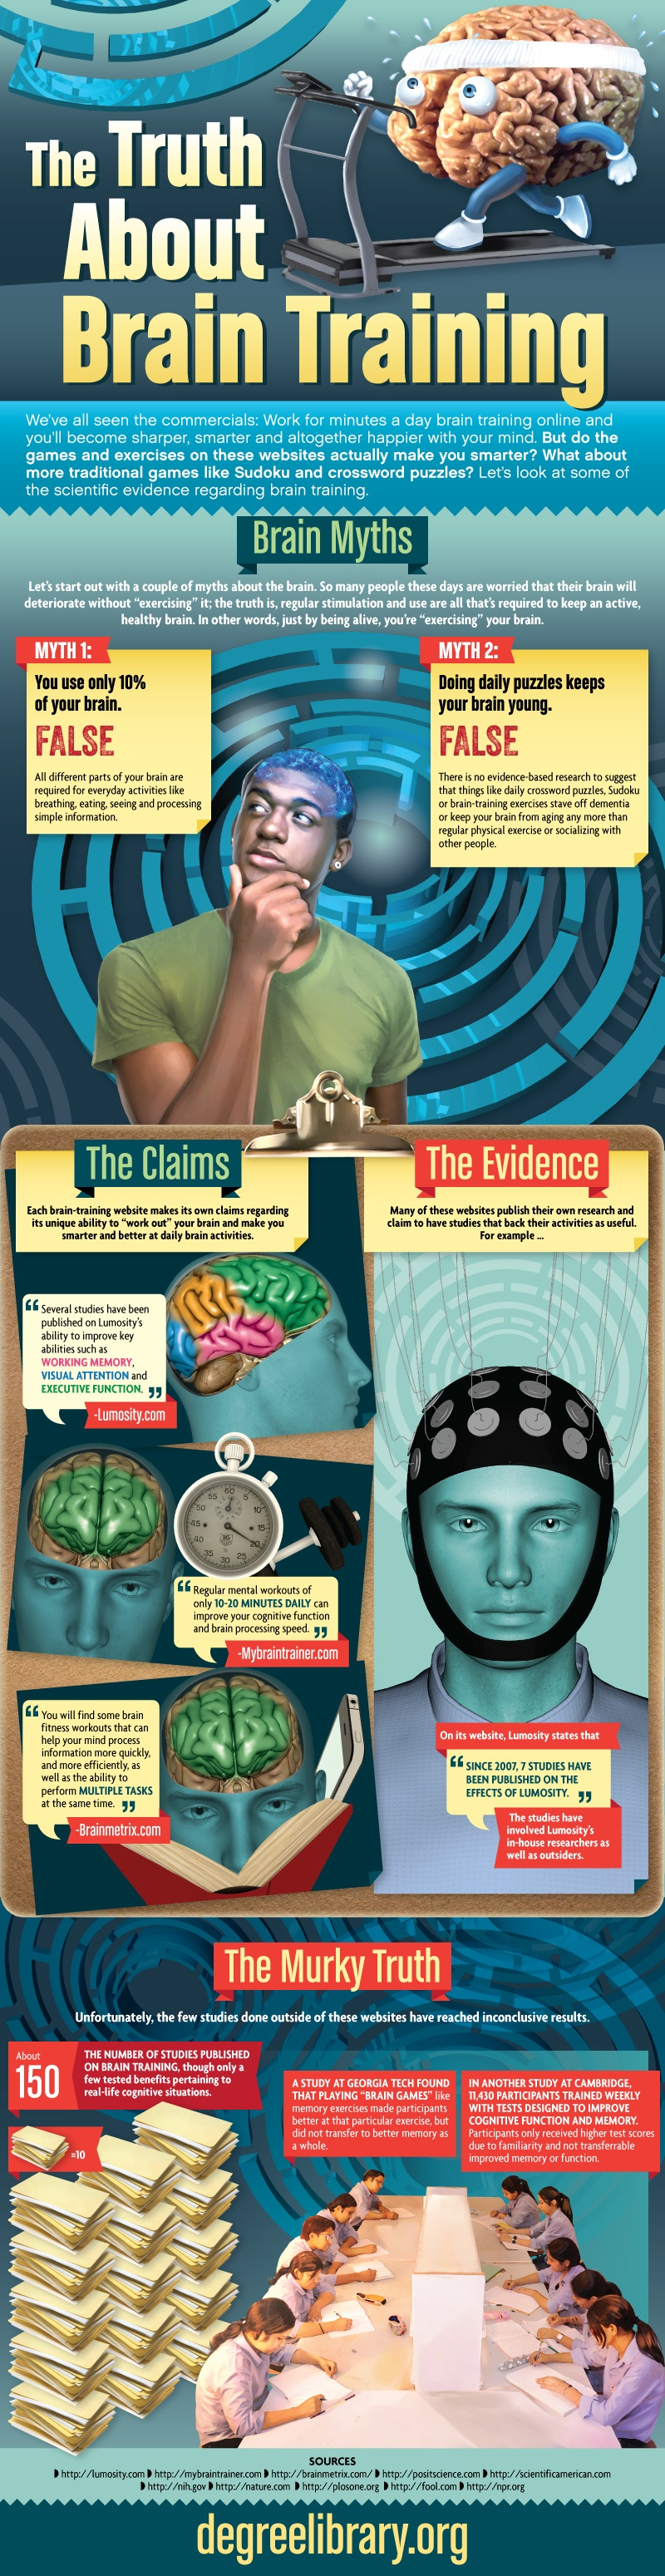 The Truth About Brain Training Infographic